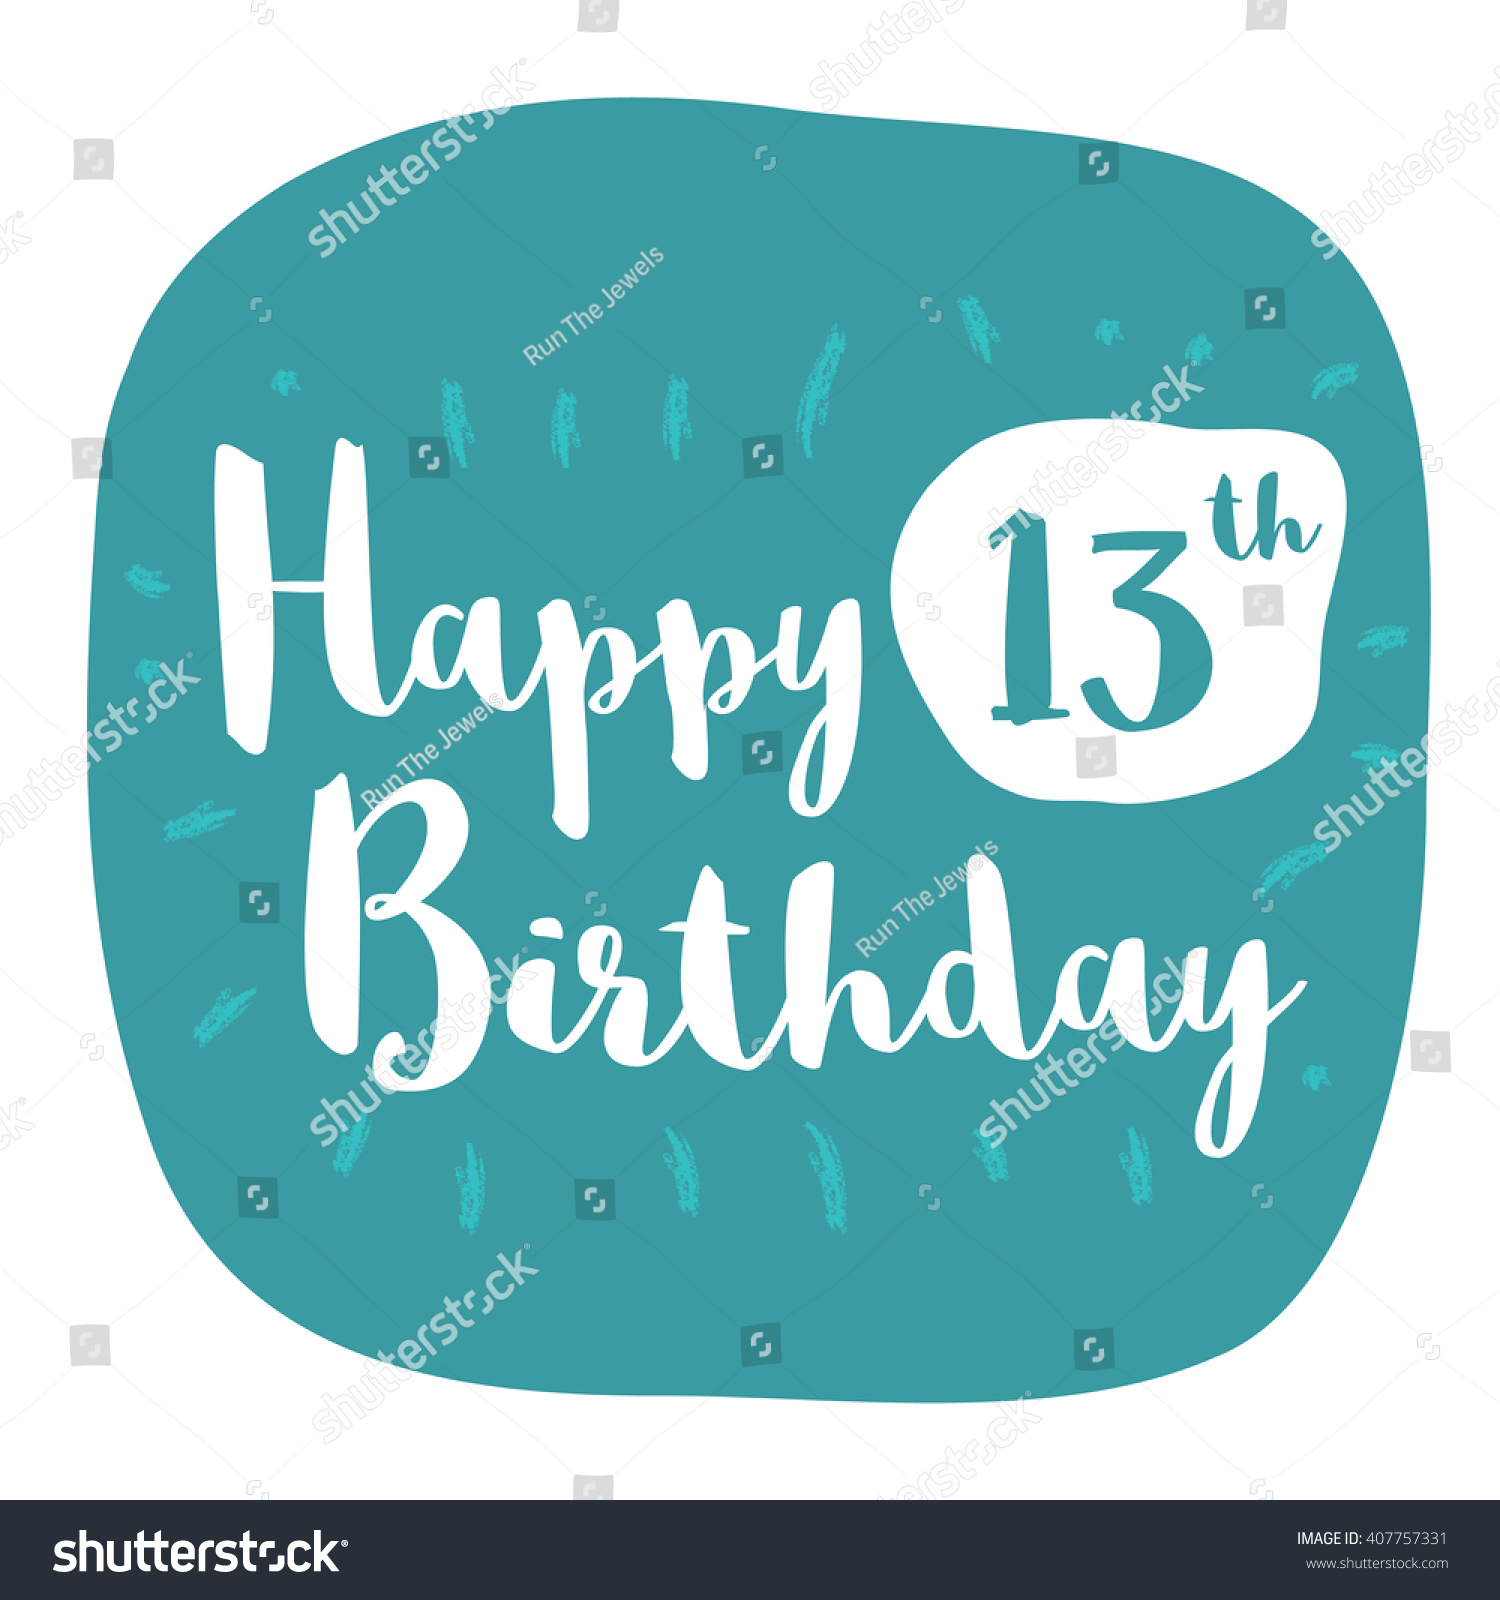 Happy 13th birthday card brush lettering stock vector 407757331 happy 13th birthday card brush lettering vector design bookmarktalkfo Image collections